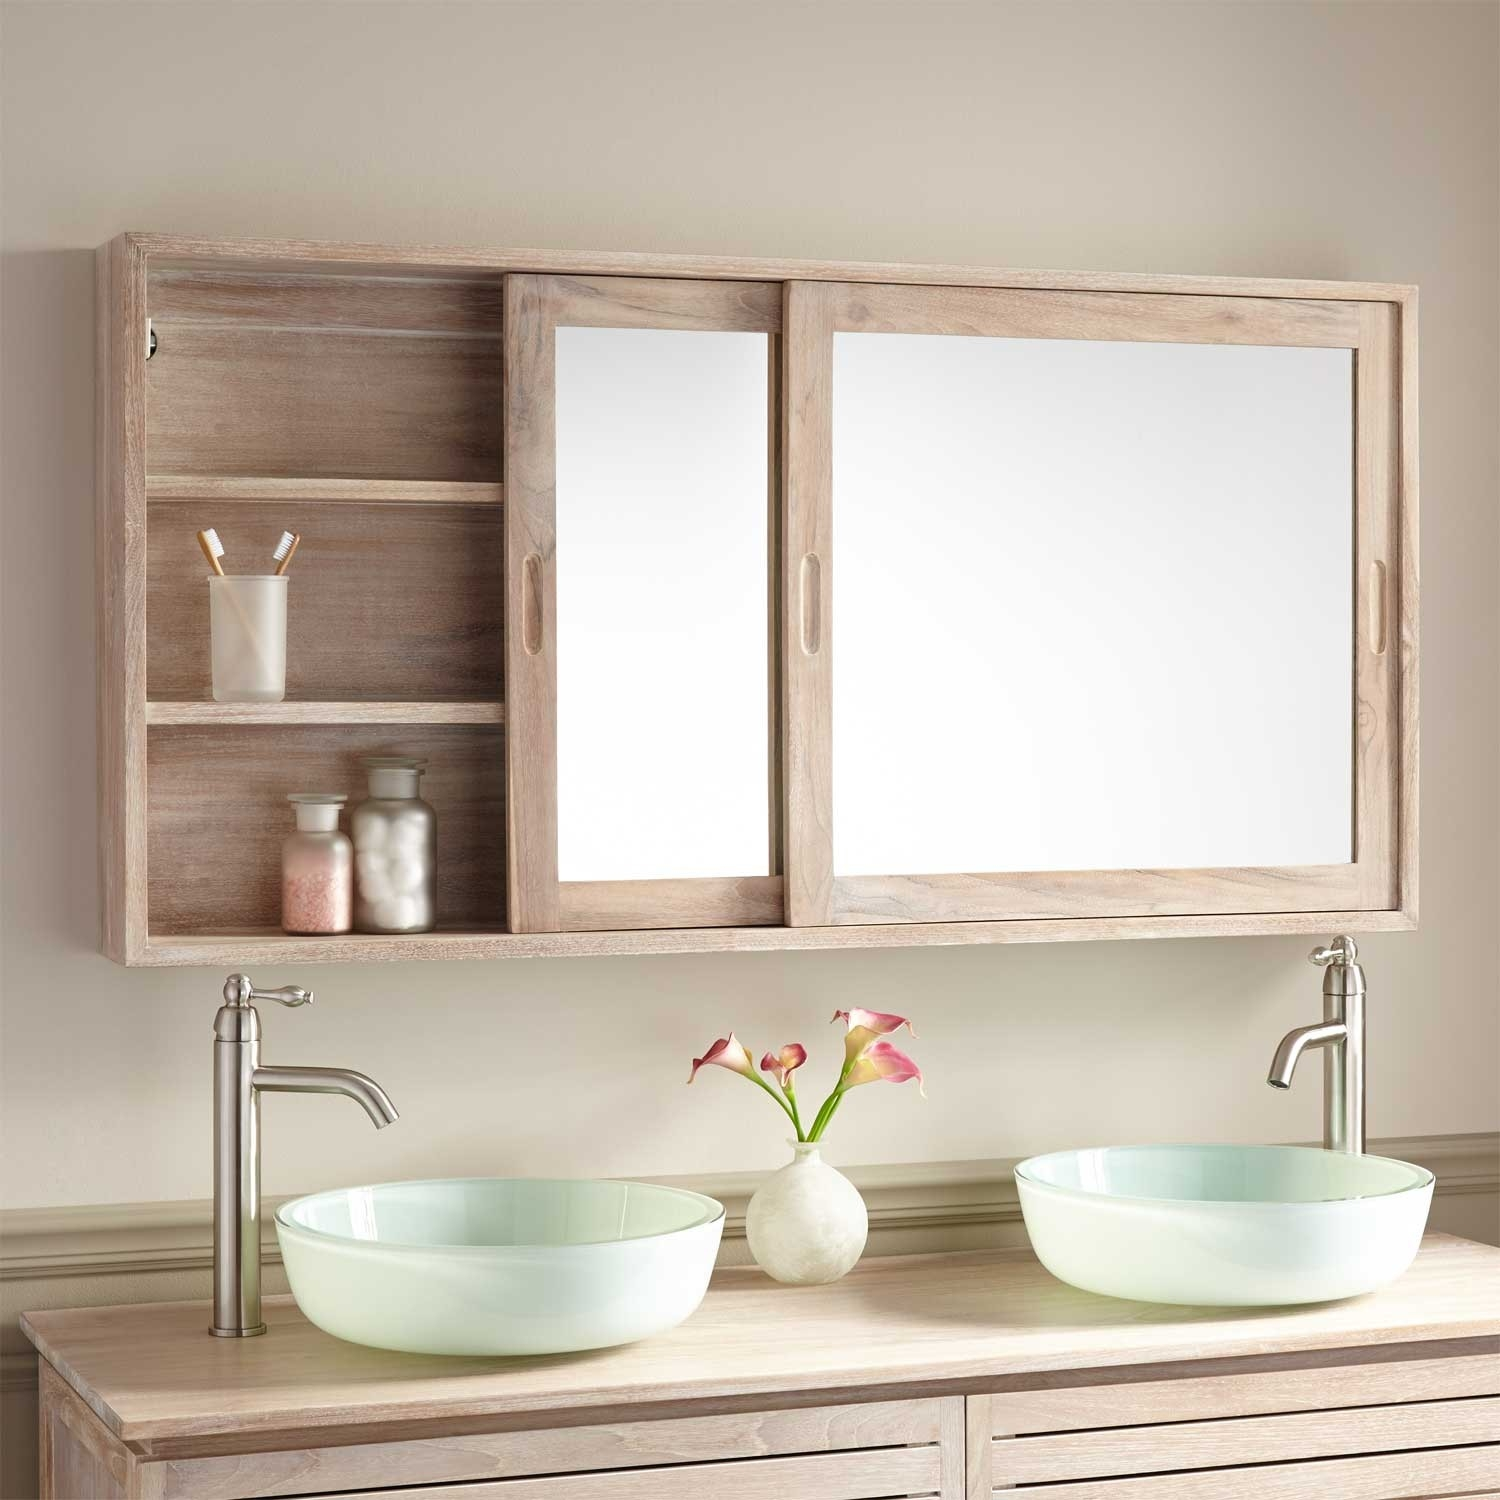 Shallow Bathroom Cabinet With Sliding Doors